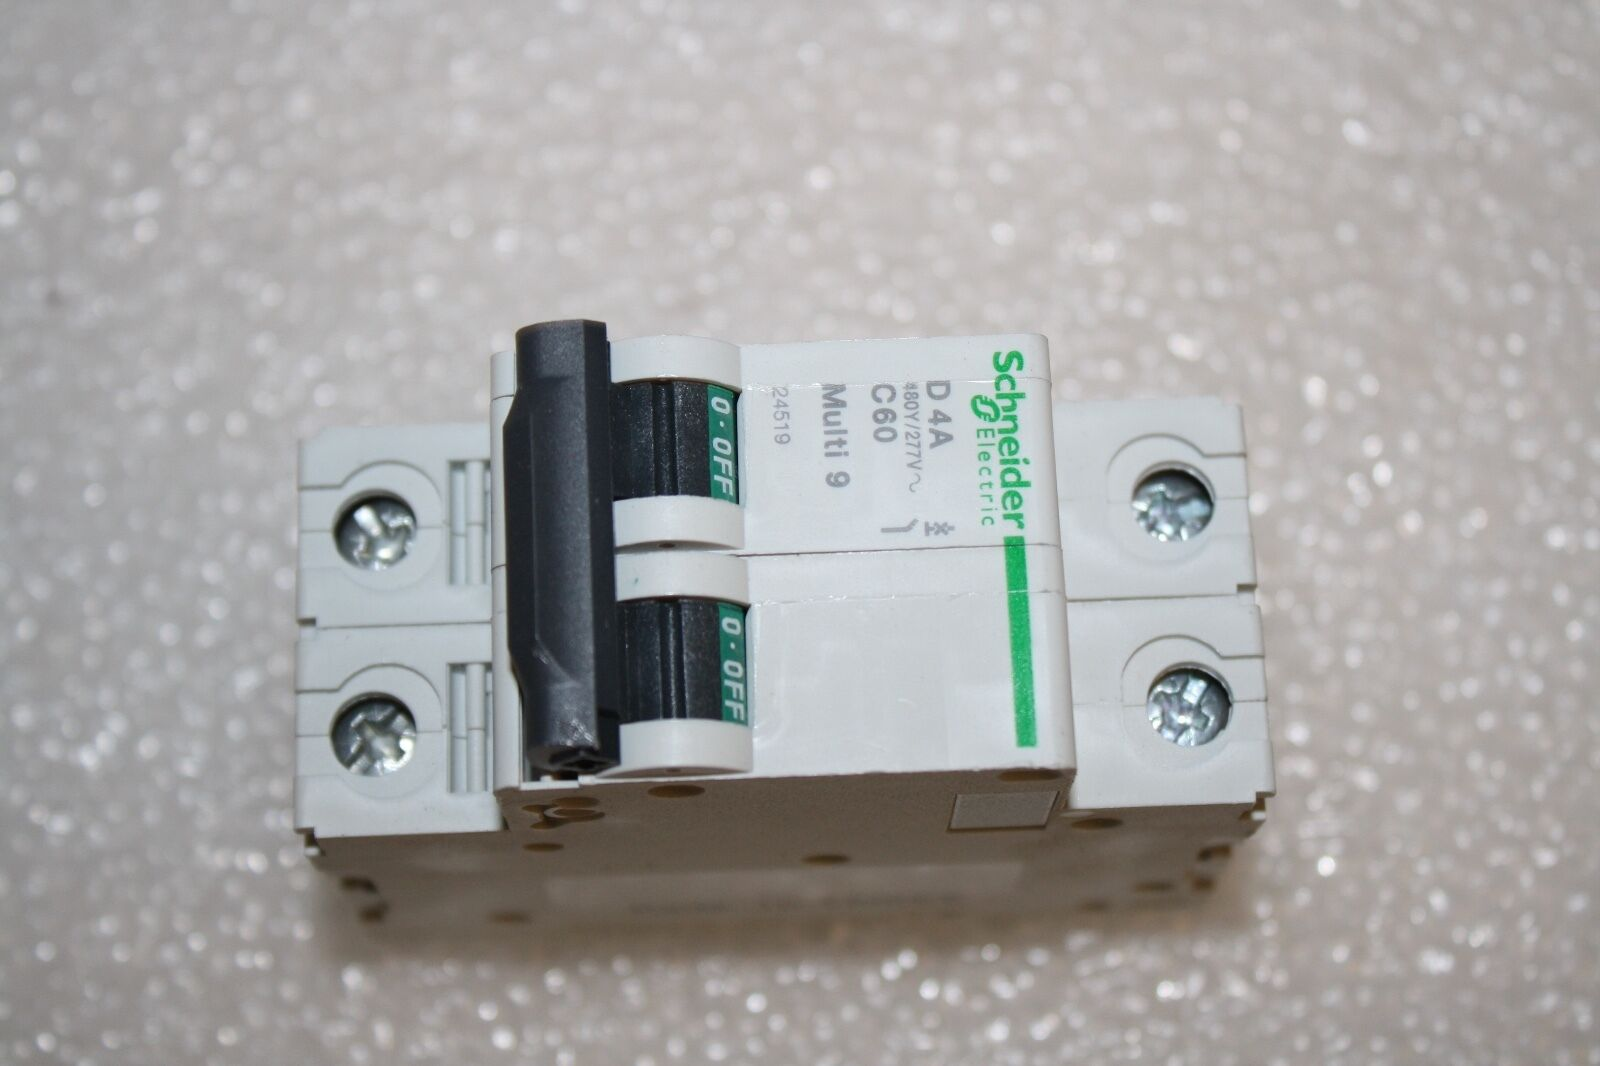 Schneider Electric 24519 Circuit Breaker Lug C60n 2pole 4a Din Thermometerwithstandalonearduinouno Images Thermistor Circuitjpg 1 Of 7only 5 Available